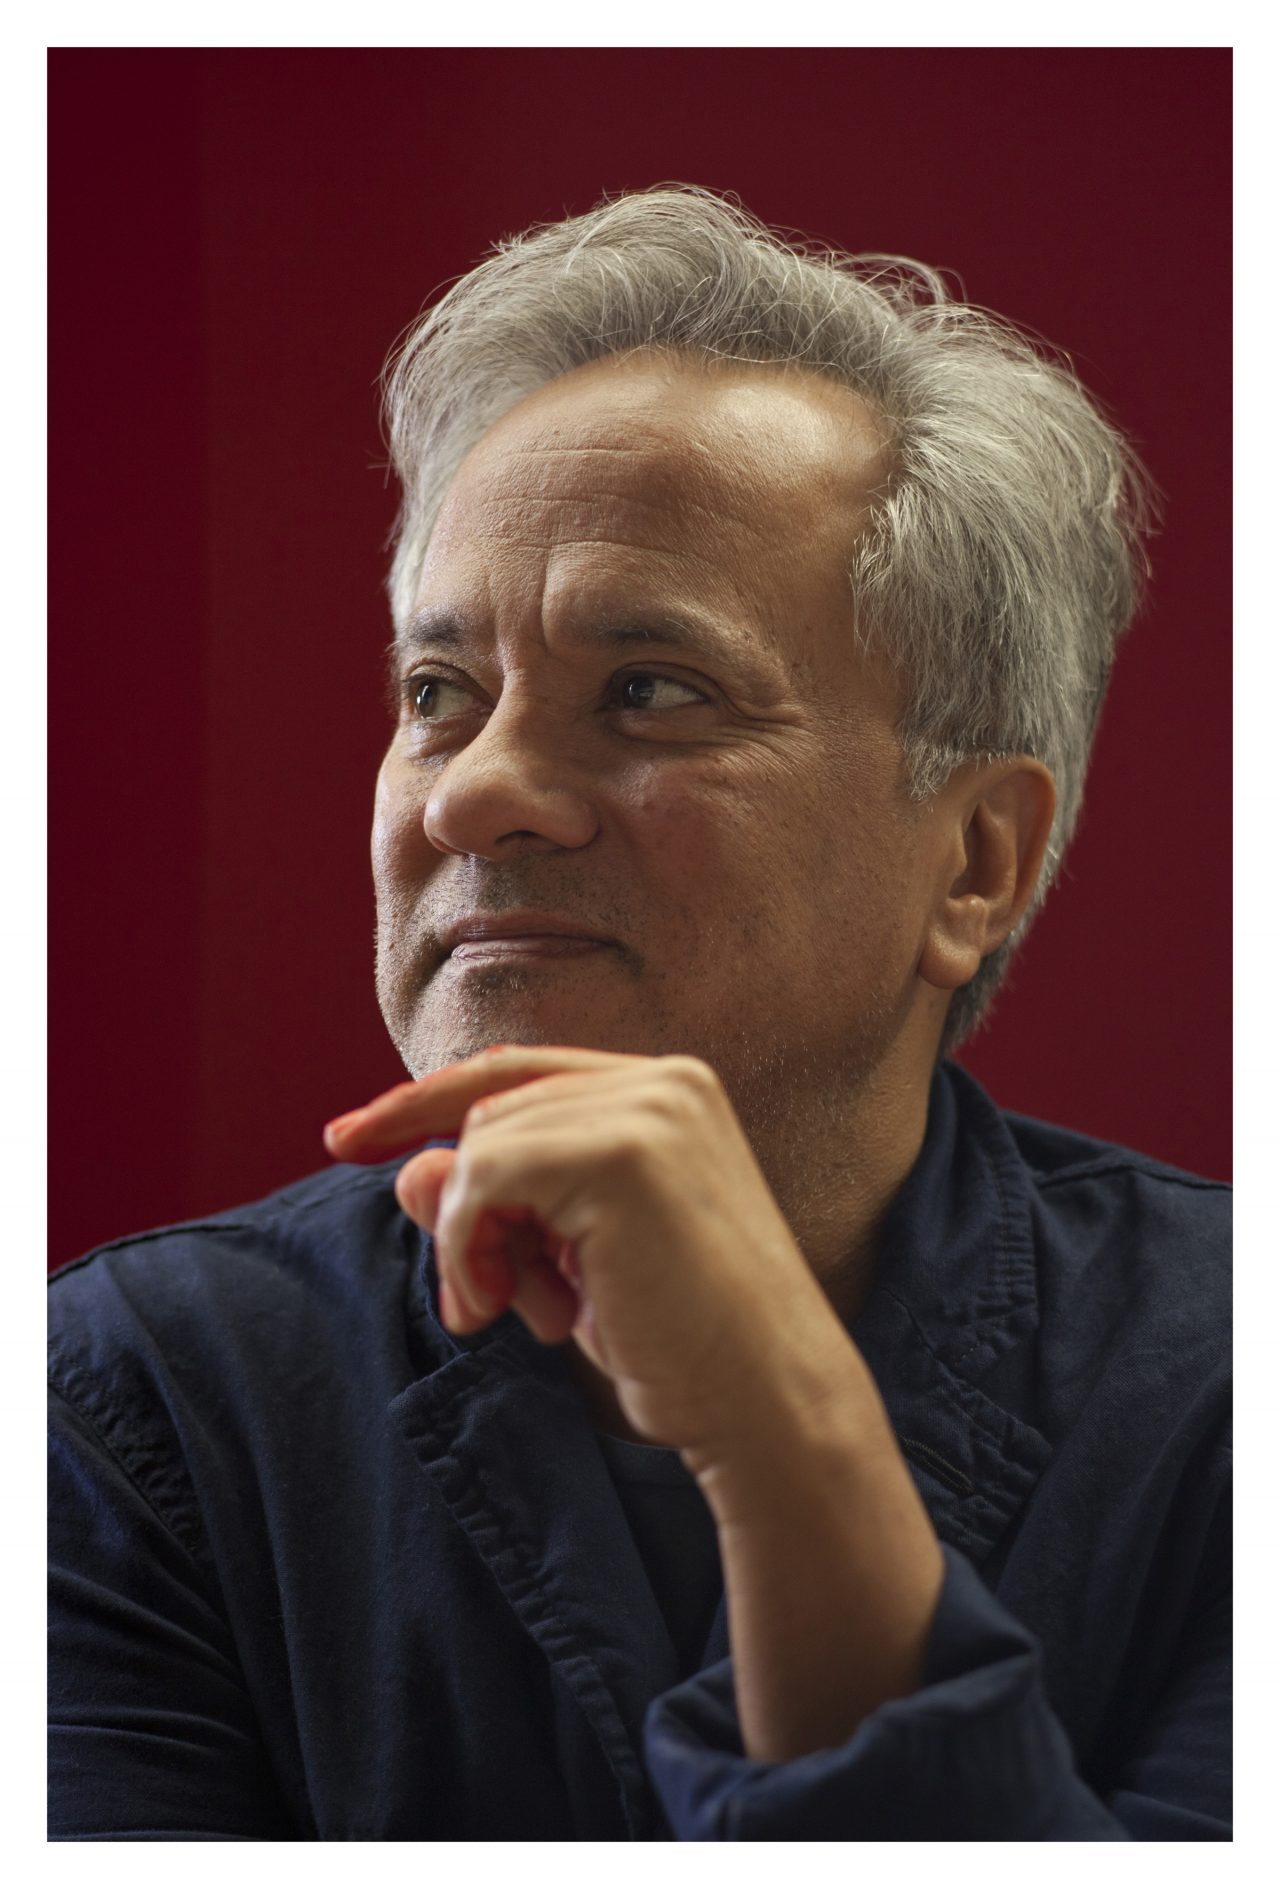 Sir Anish Kapoor behind 70 candles for 70 years design